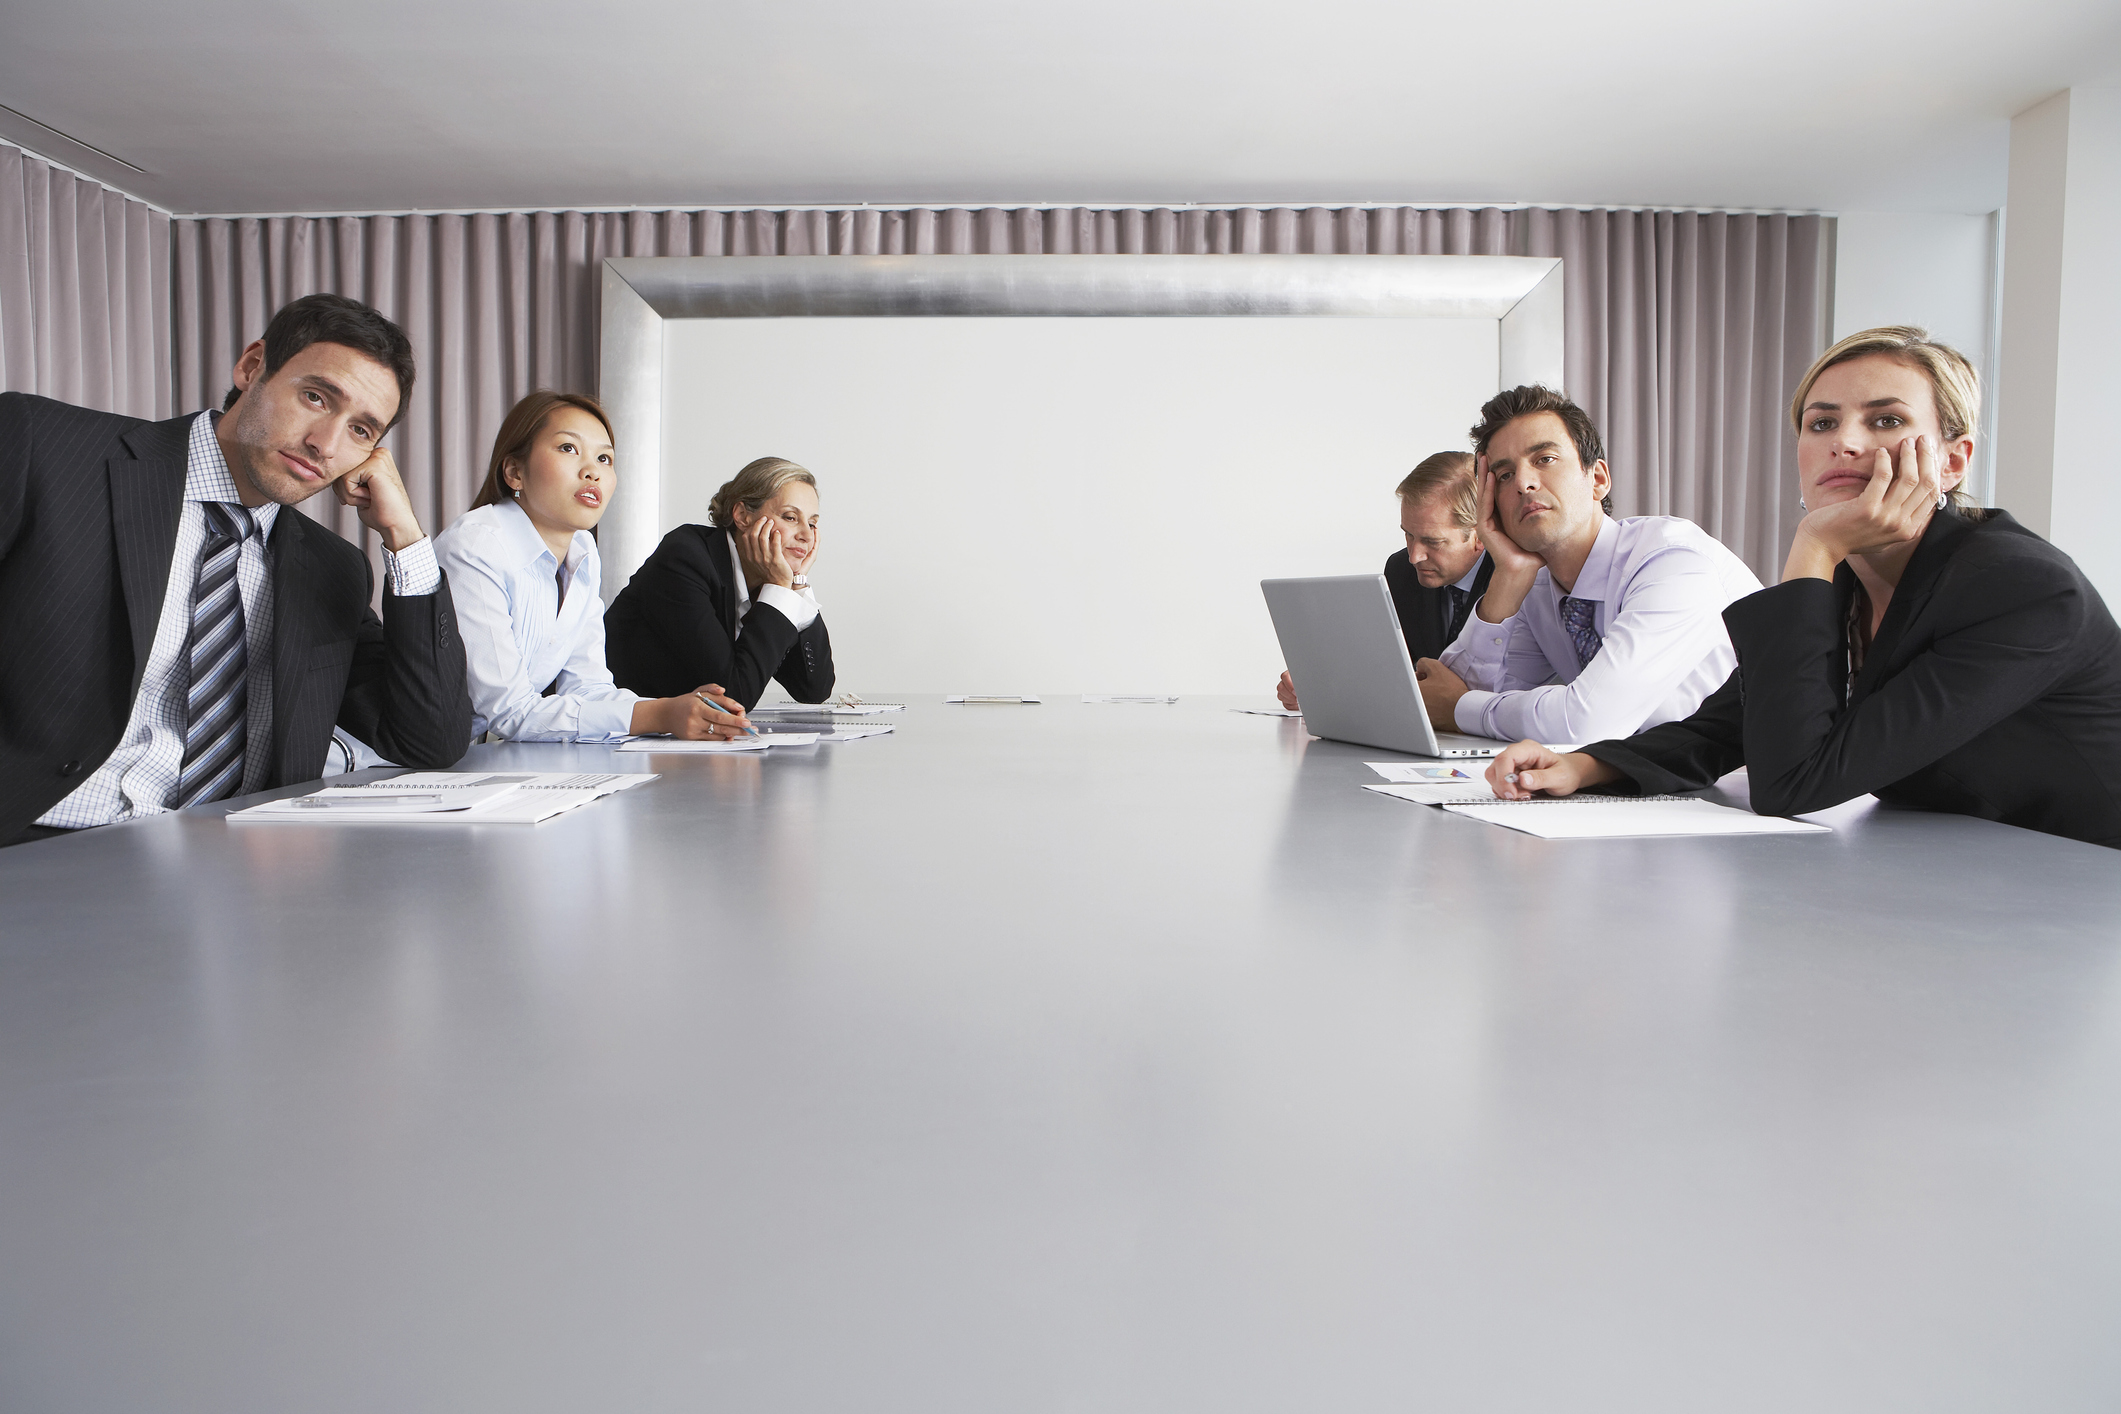 5 Ways You're Sabotaging Your Meetings Before They Even Start